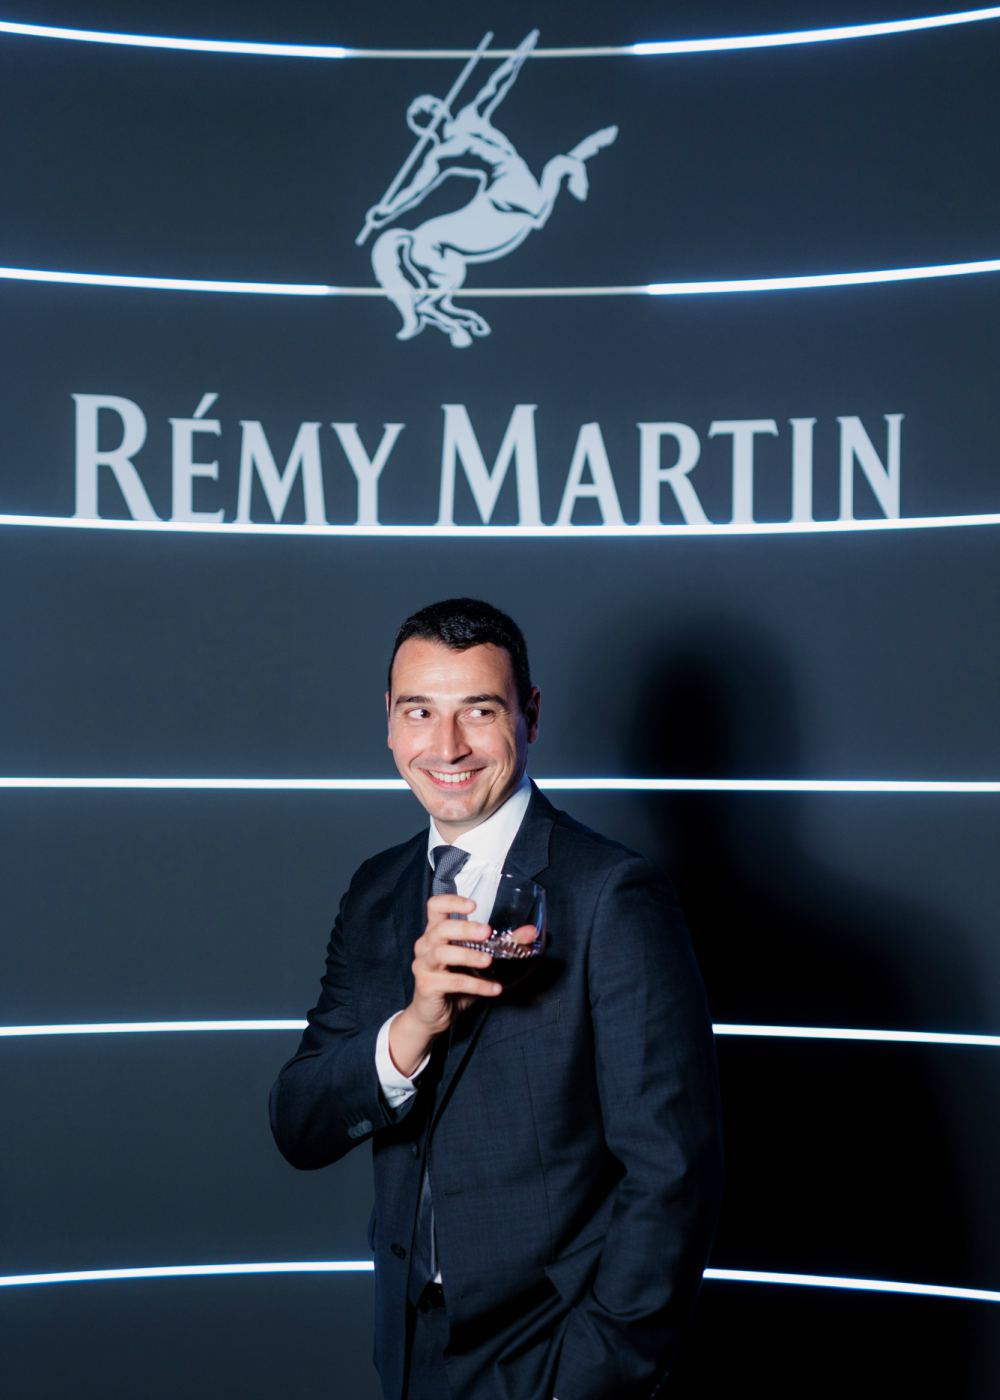 LA MAISON RÉMY MARTIN SEA Debut in KL Celler Master - 创造极致干邑时光:LA MAISON RÉMY MARTIN